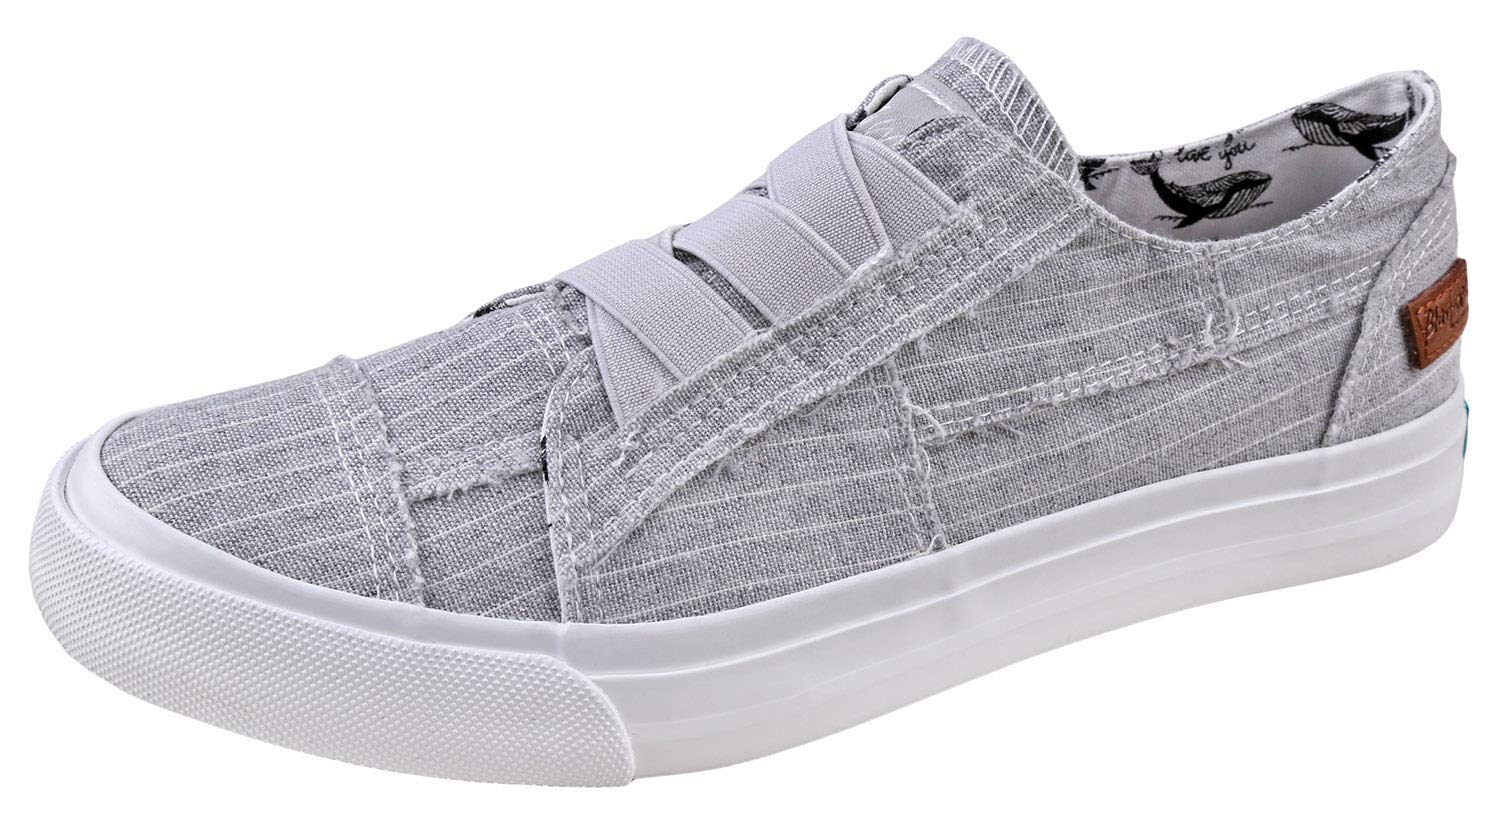 Blowfish Womens Marley Casul Shoes Marley-GRYHAMMGrey Hammock Stripe 8.5 by Blowfish Malibu